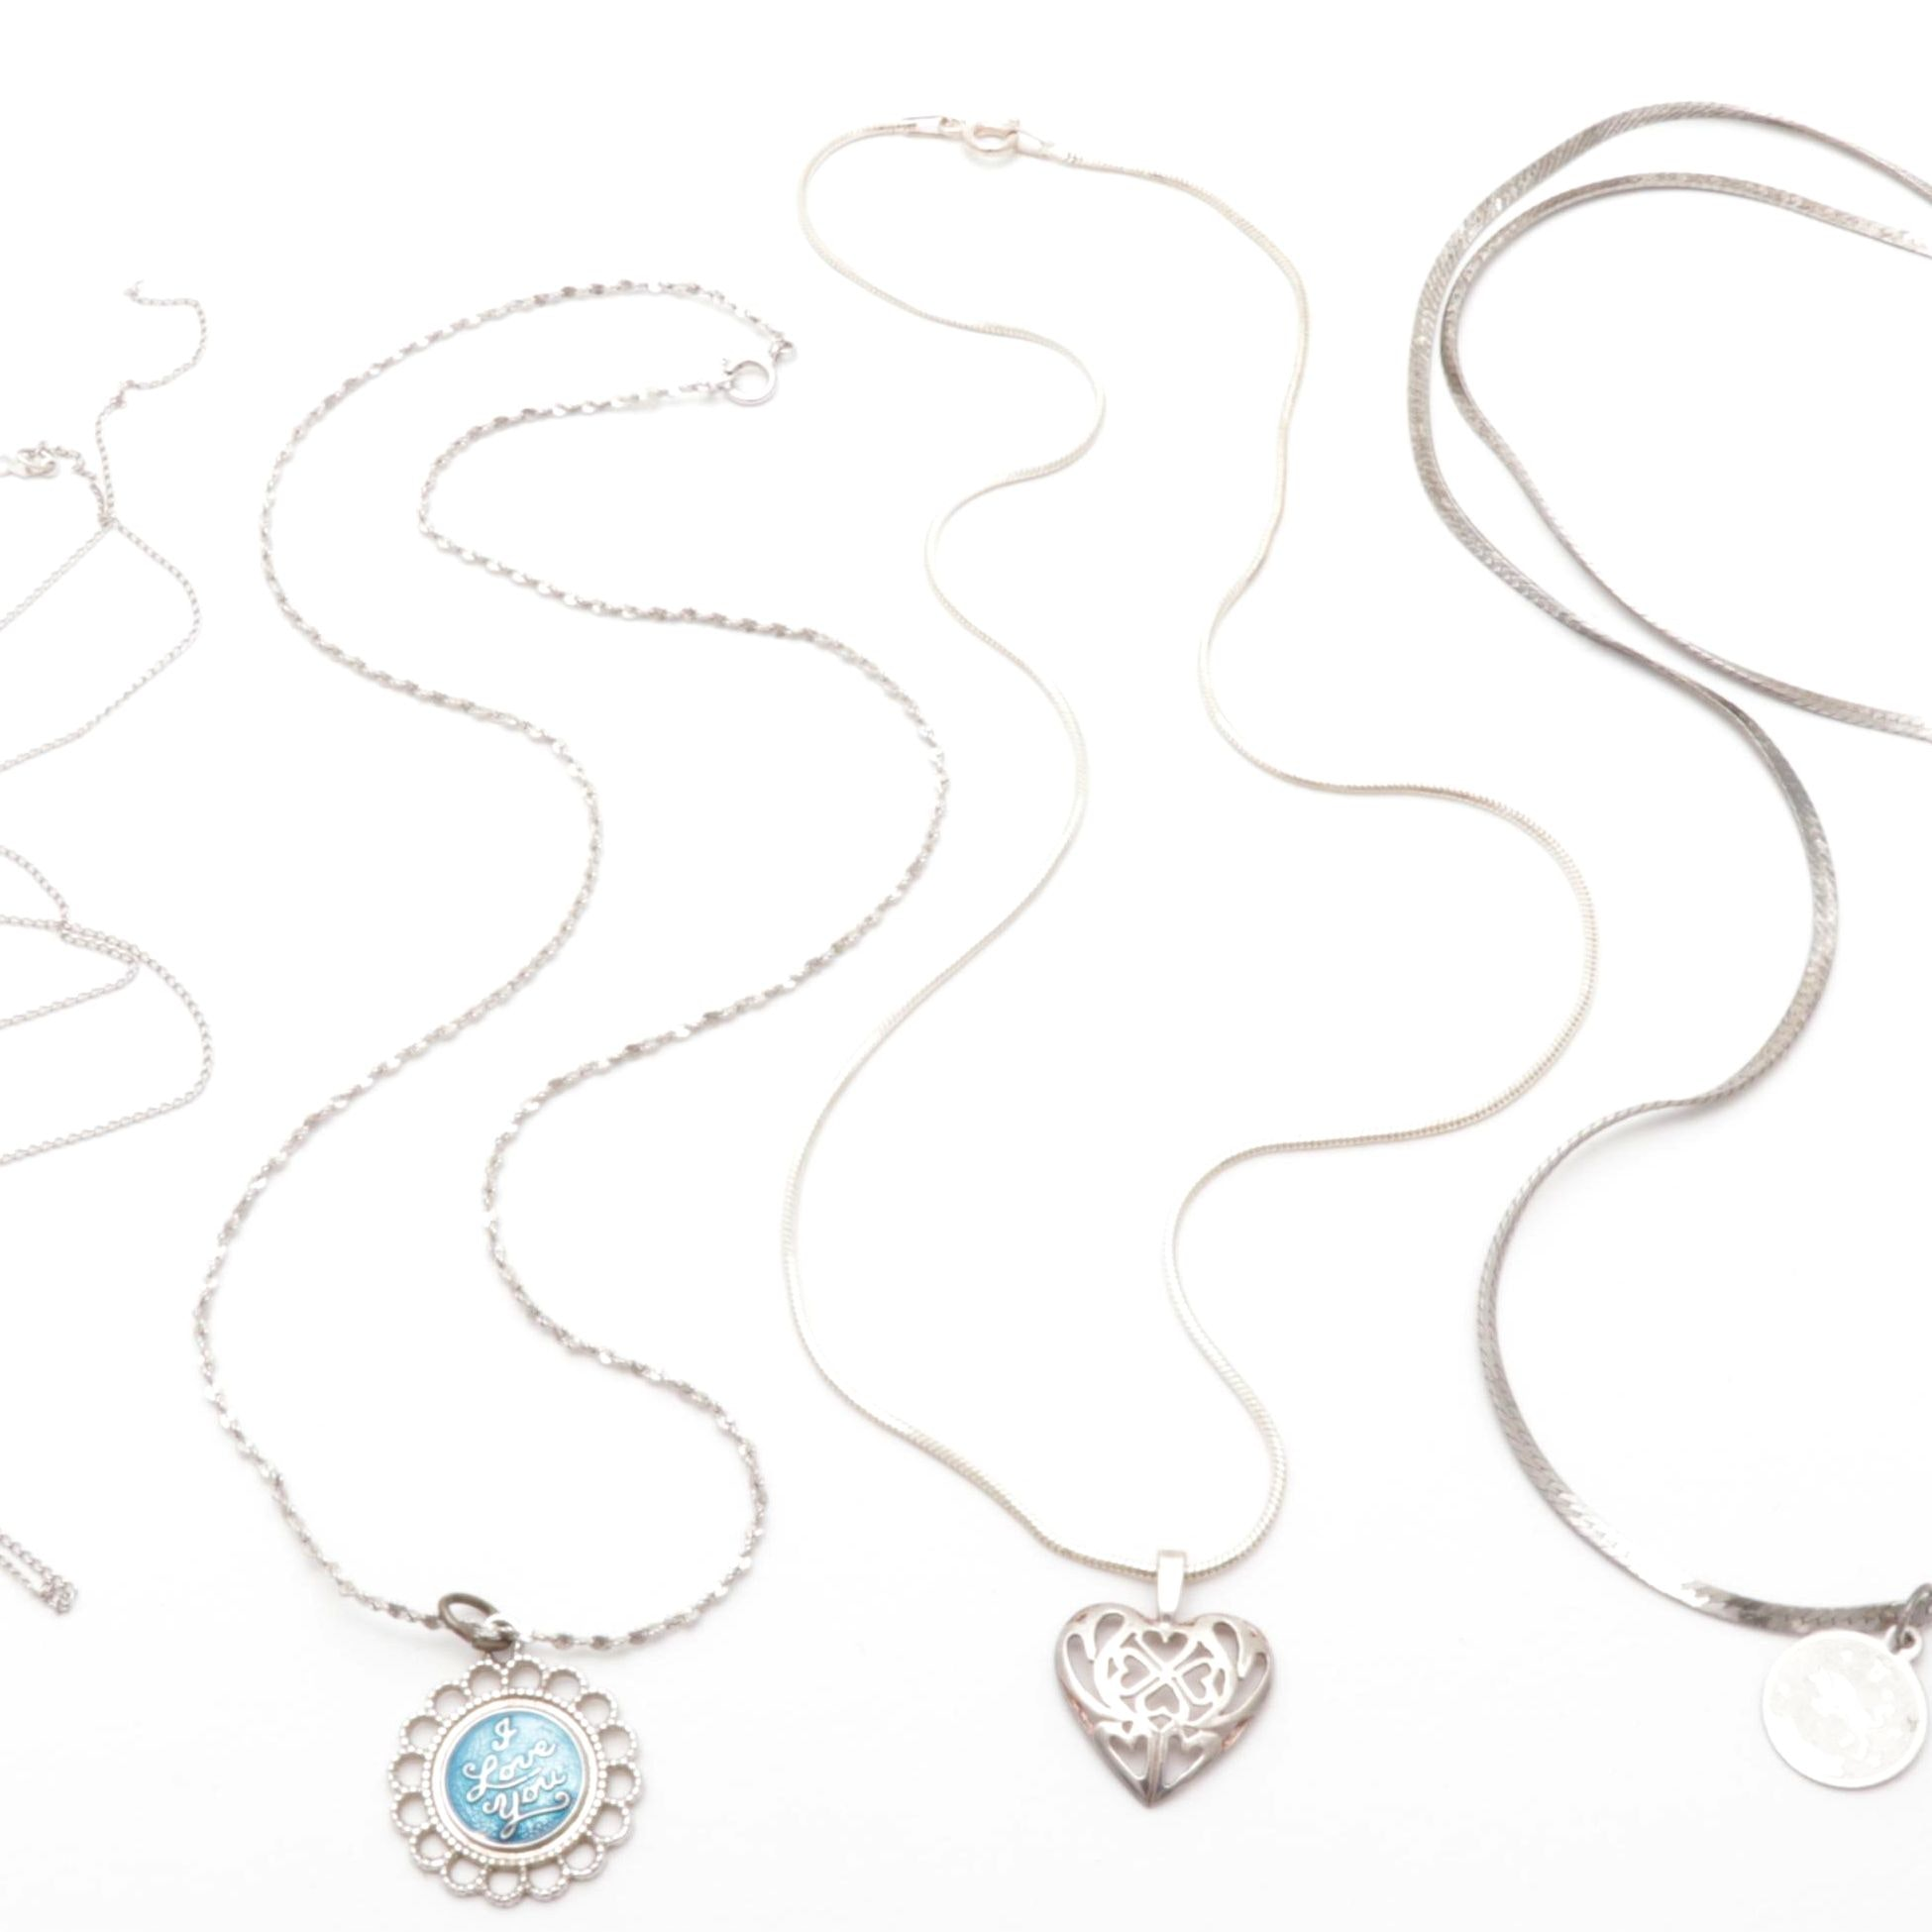 Sterling Silver Necklace Chains and Pendants